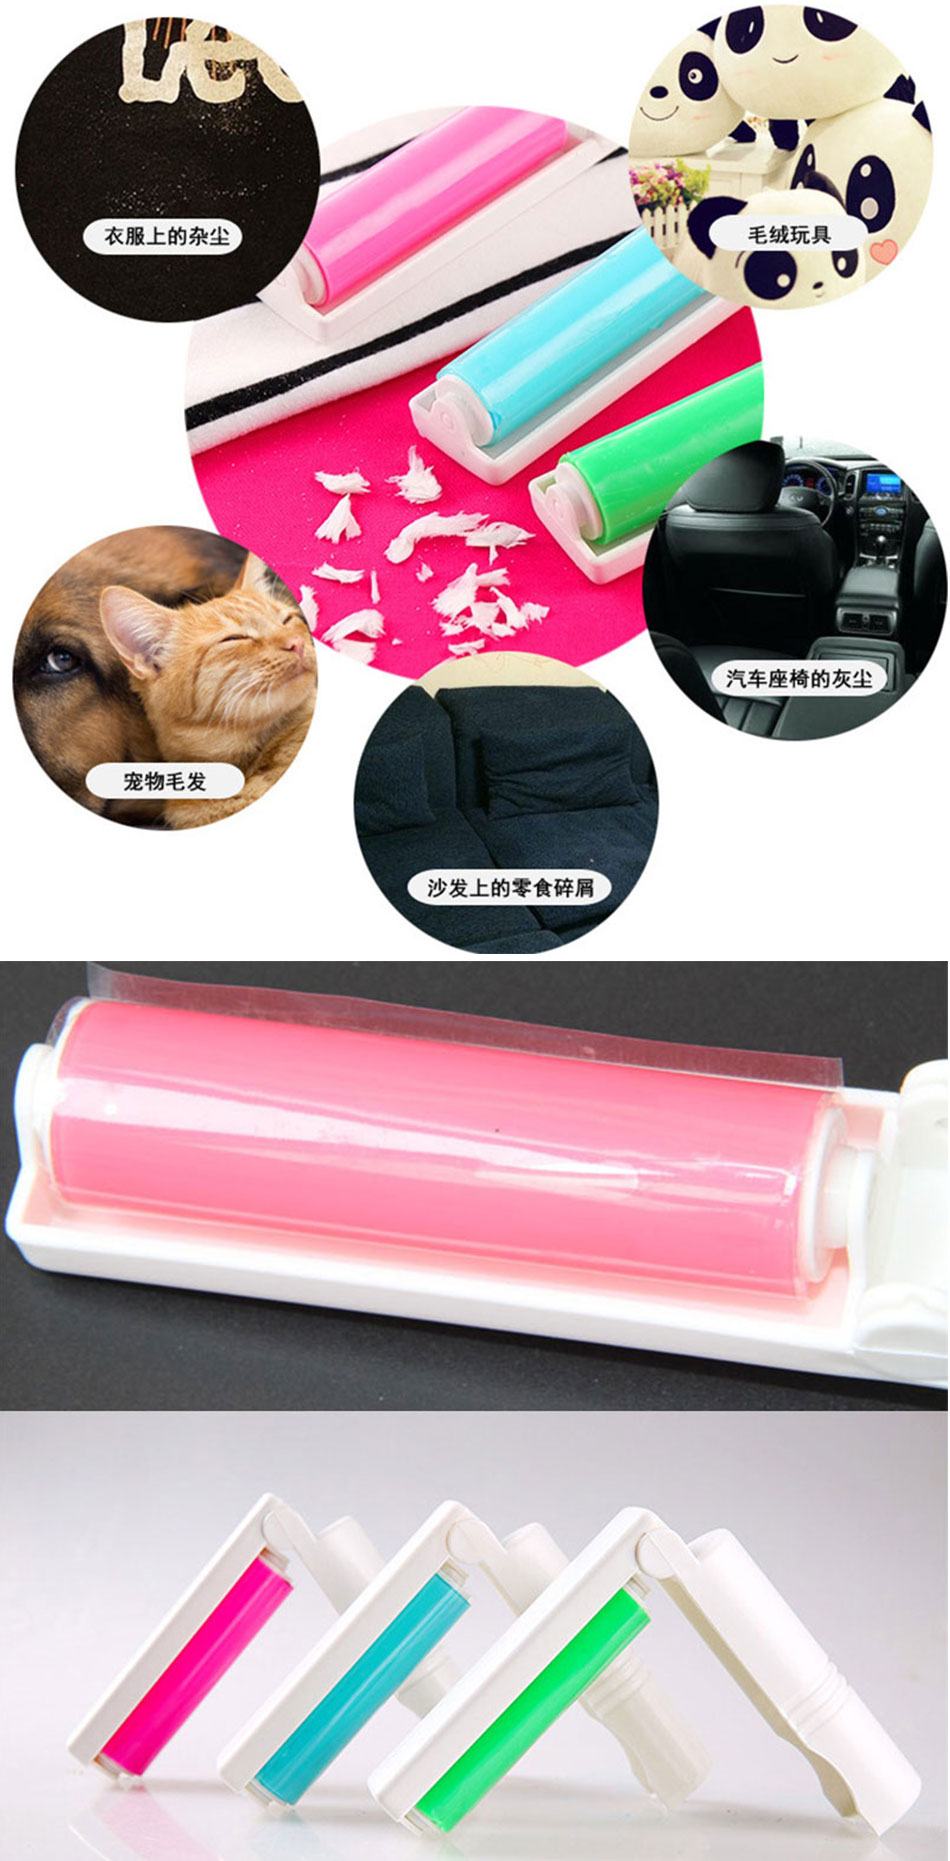 pet hair remover lint remover quita pelusas para la ropa saca pelusas de ropa machine to remove the pellets dry cleaning pet fur remover clothes brush